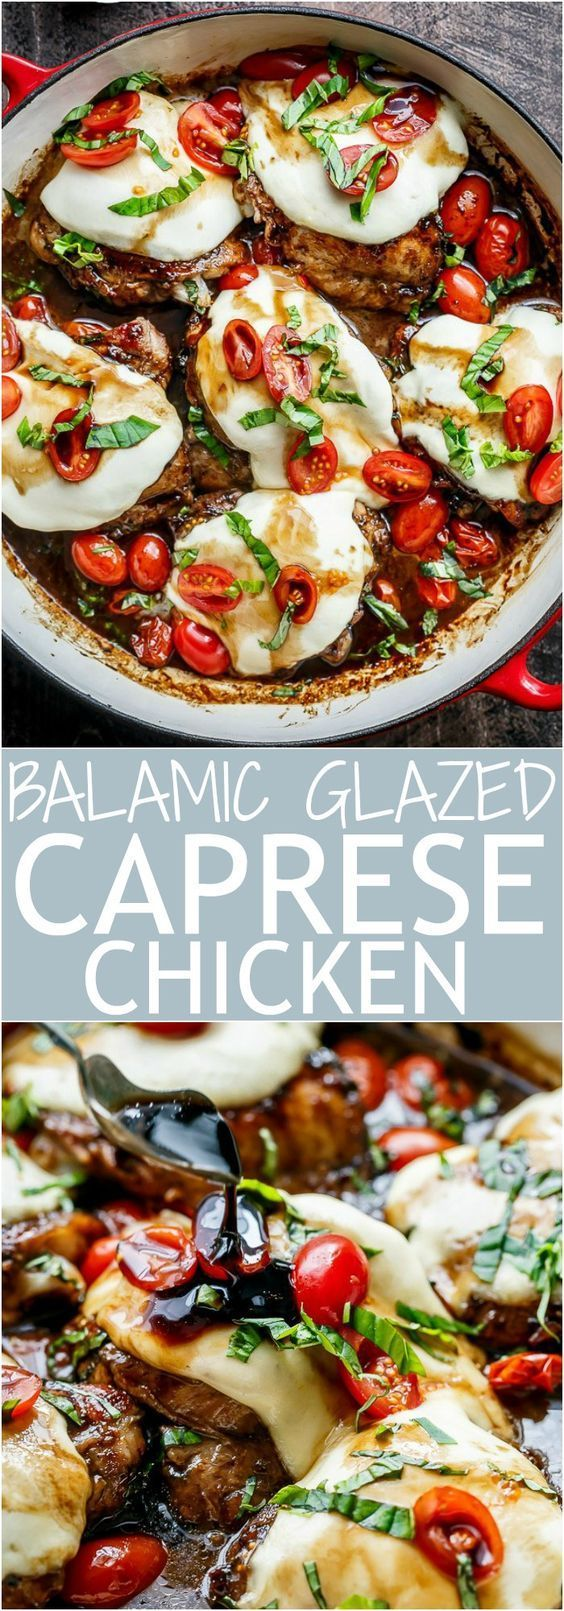 Caprese Chicken cooked right in a sweet, garlic balsamic glaze with juicy cherry tomatoes, fresh basil and topped with melted mozzarella cheese! | cafedelites.com: